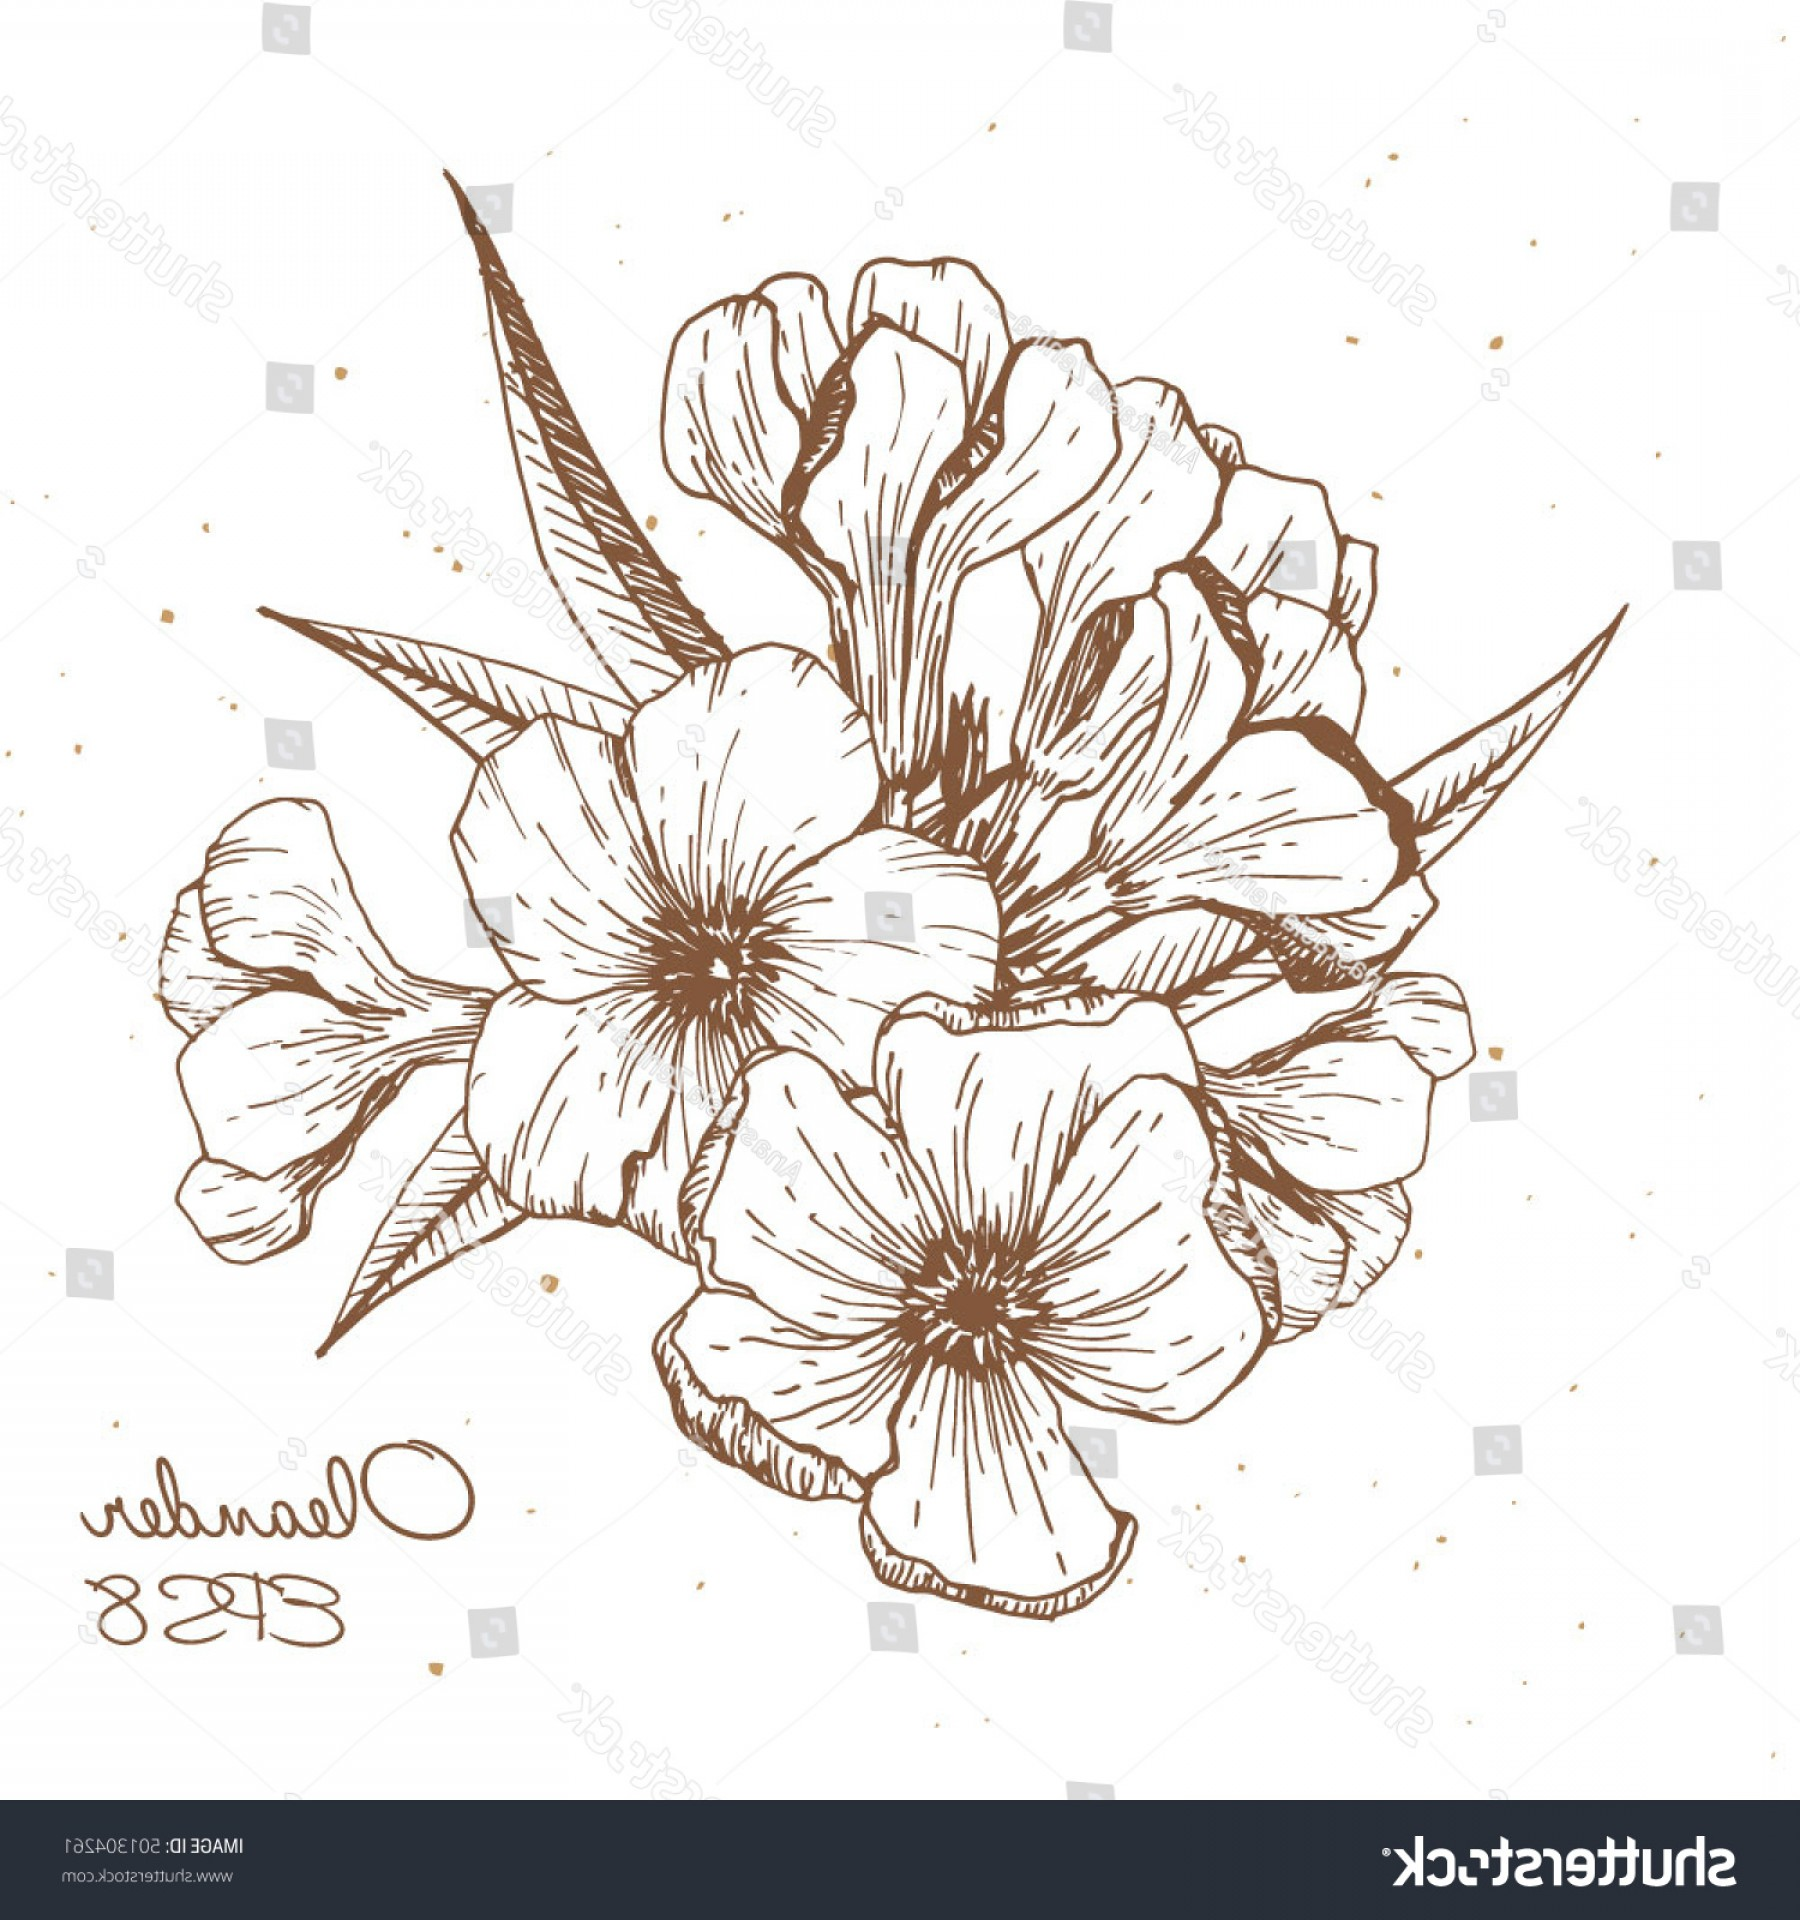 Stock Vector Graphics: Hand Made Drawing Of Kaner Flower Oleander Flower Vector Graphics Engraved Style Stock Vector